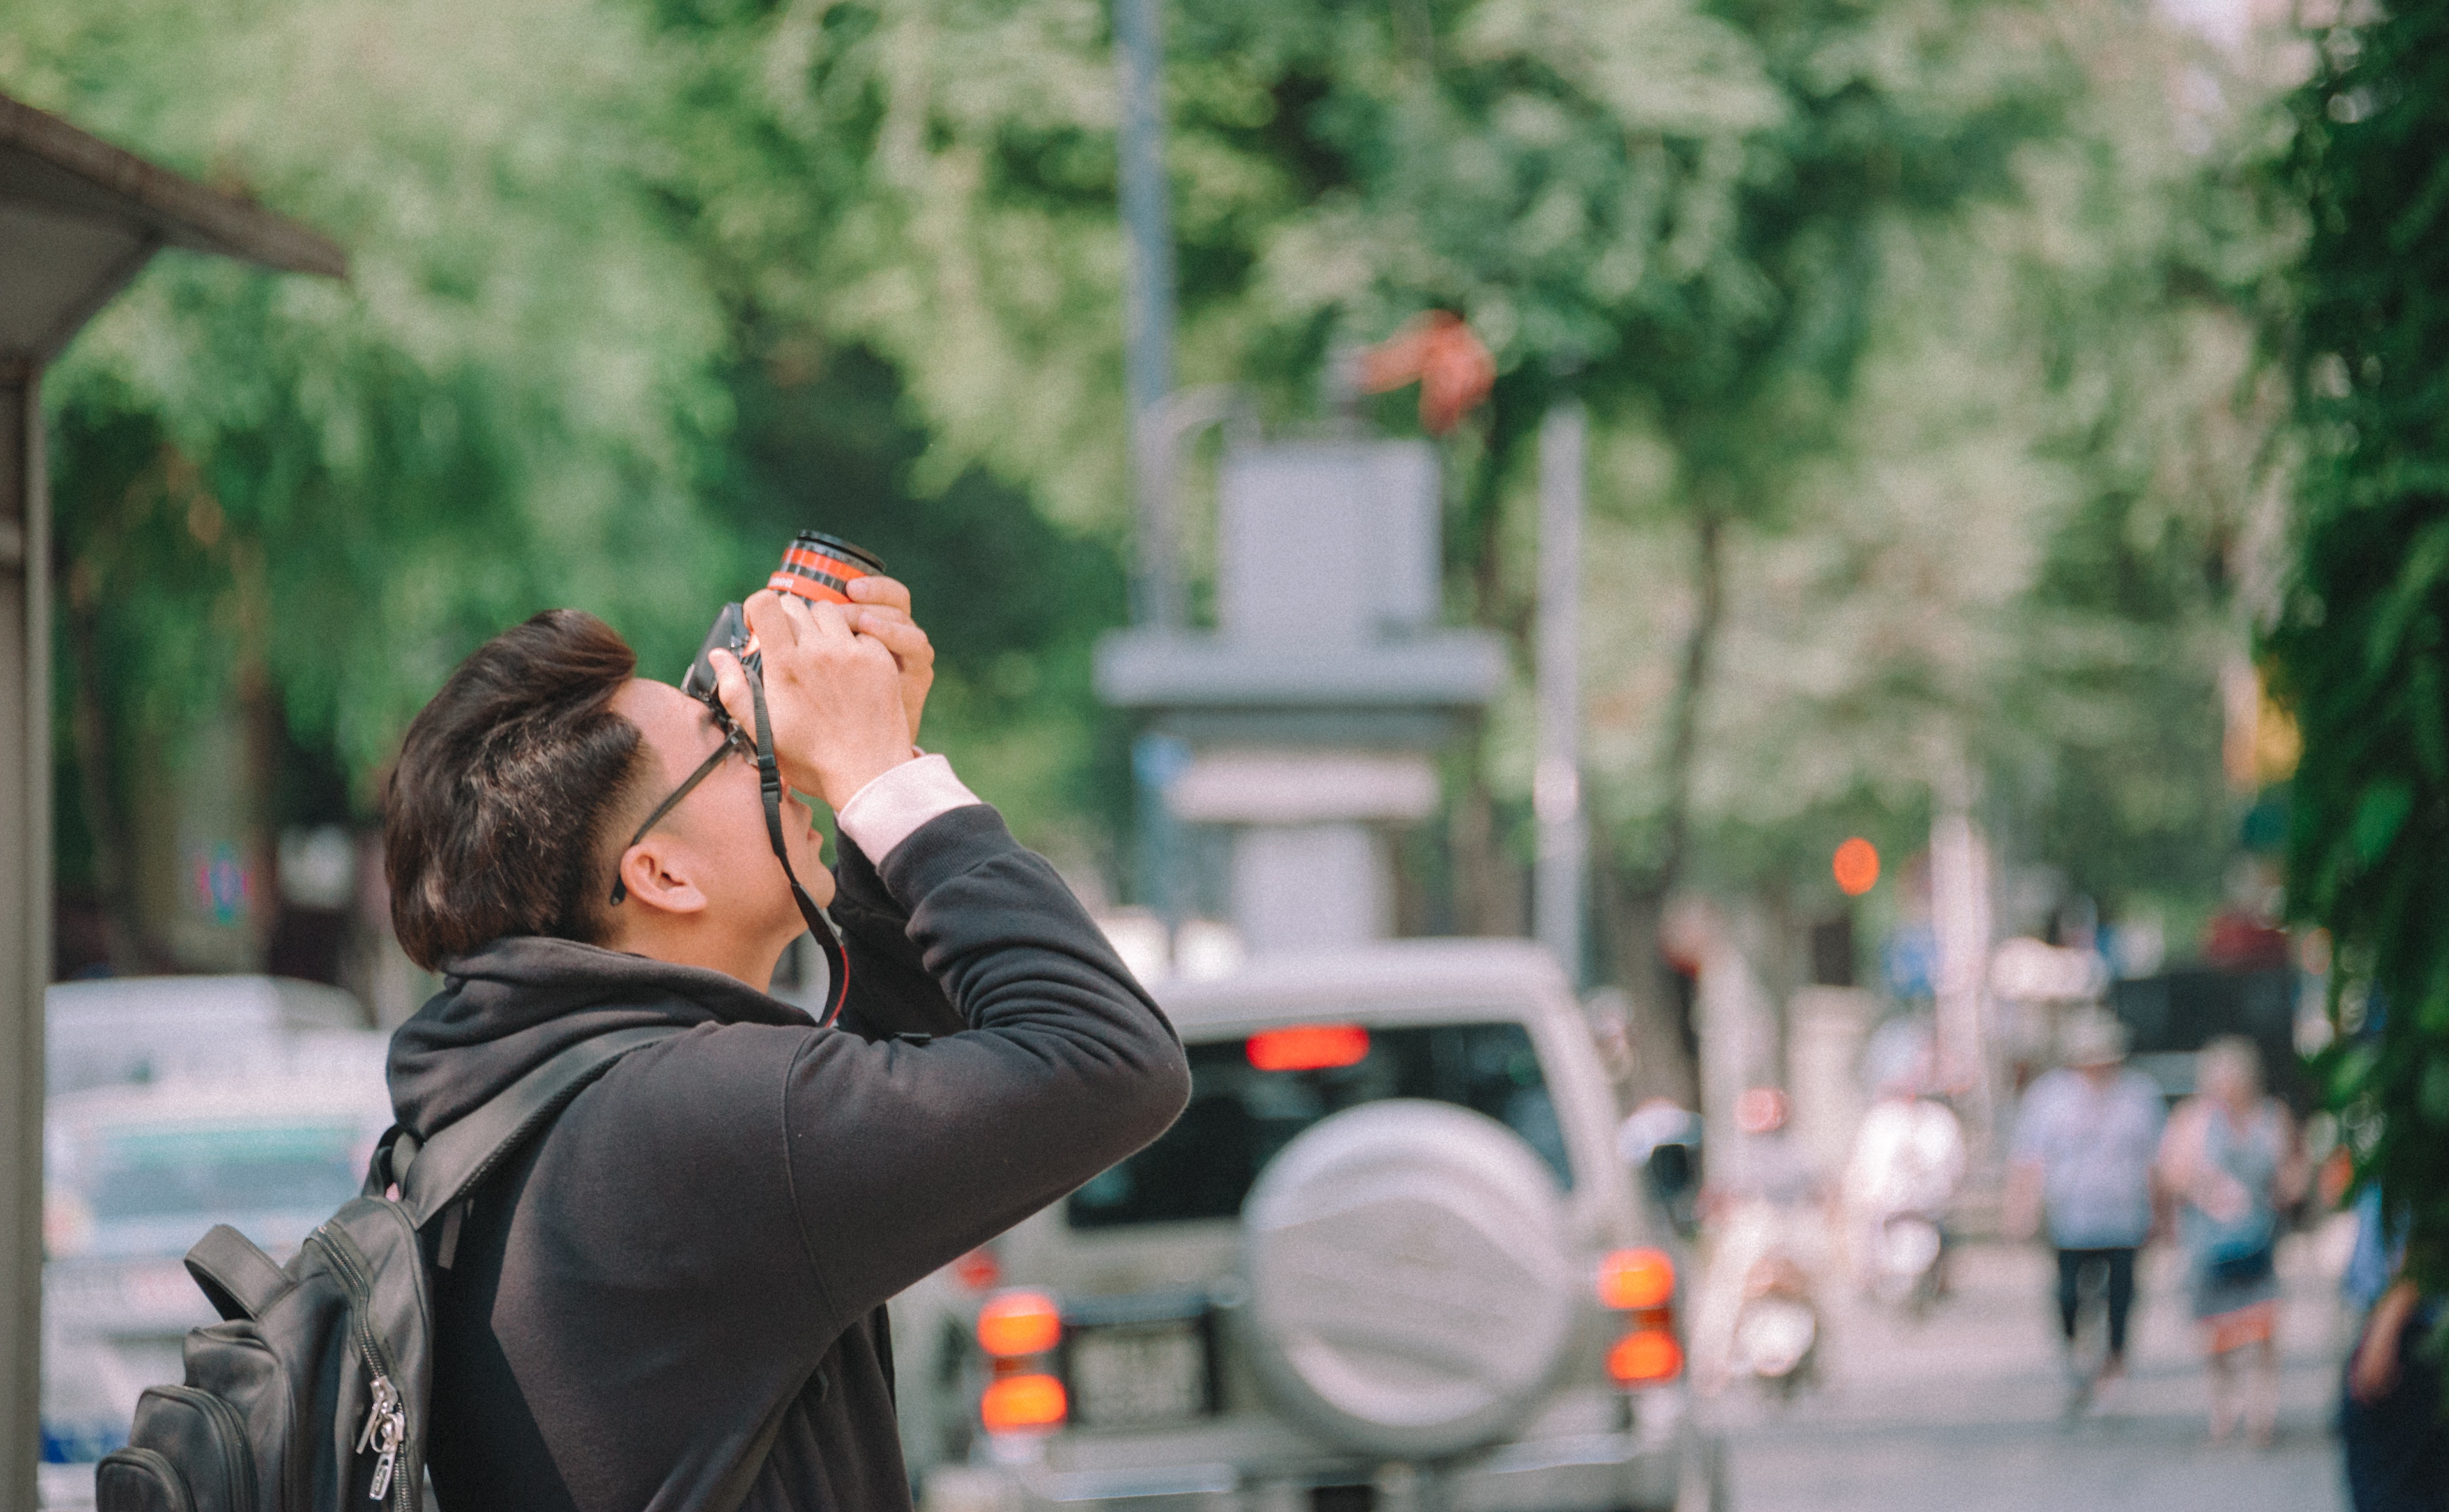 Man Wearing Black Hoodie Holding Dslr Camera Shooting on Upper Direction, Pavement, Young, Wear, Walking, HQ Photo